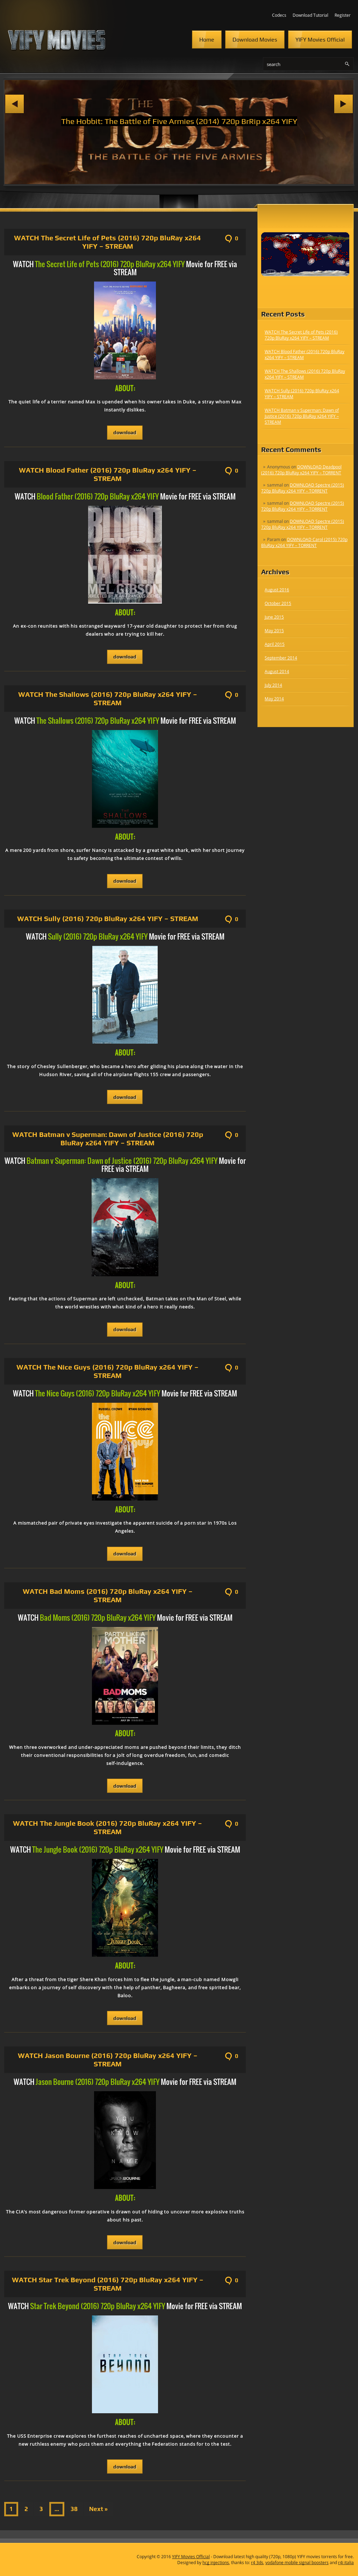 the jungle book 2016 yify download